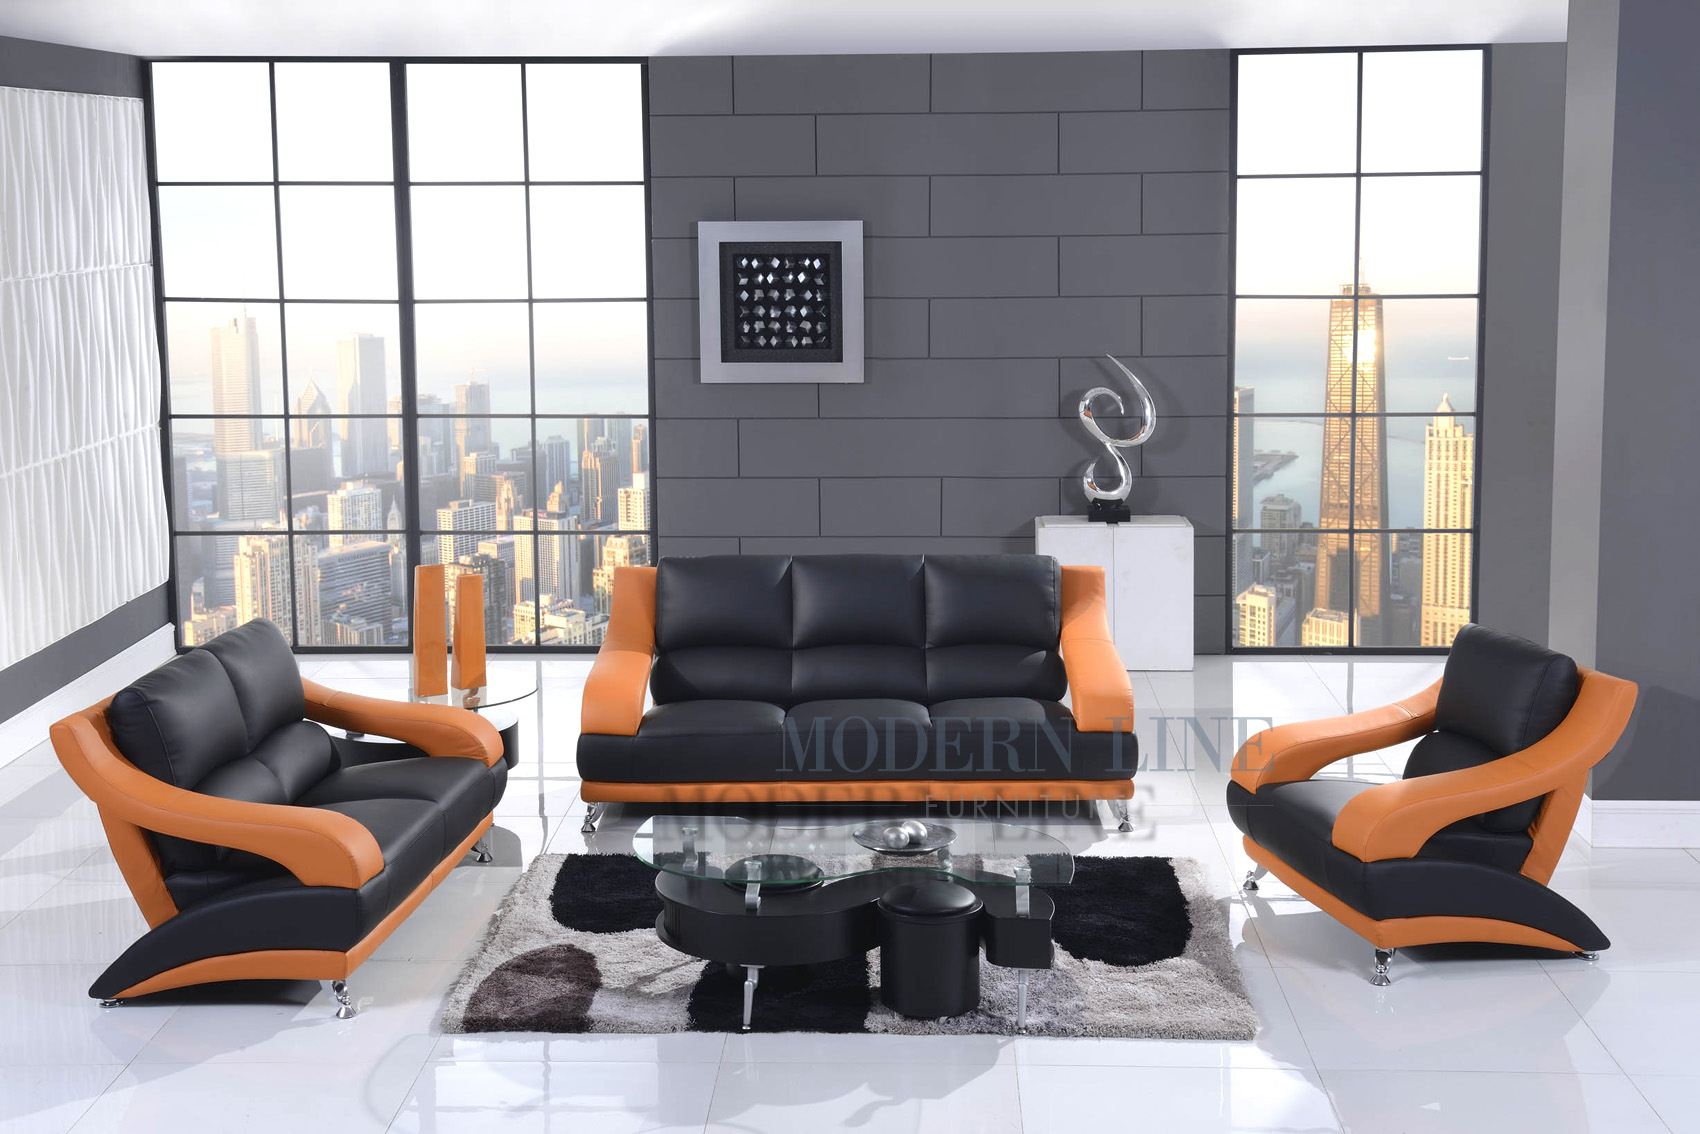 Modern Line Furniture   Commercial Furniture   Custom Made Furniture |  Orange U0026 Black Leather Modern Living Room Set: Sofa, Loveseat U0026 Chair Part 13